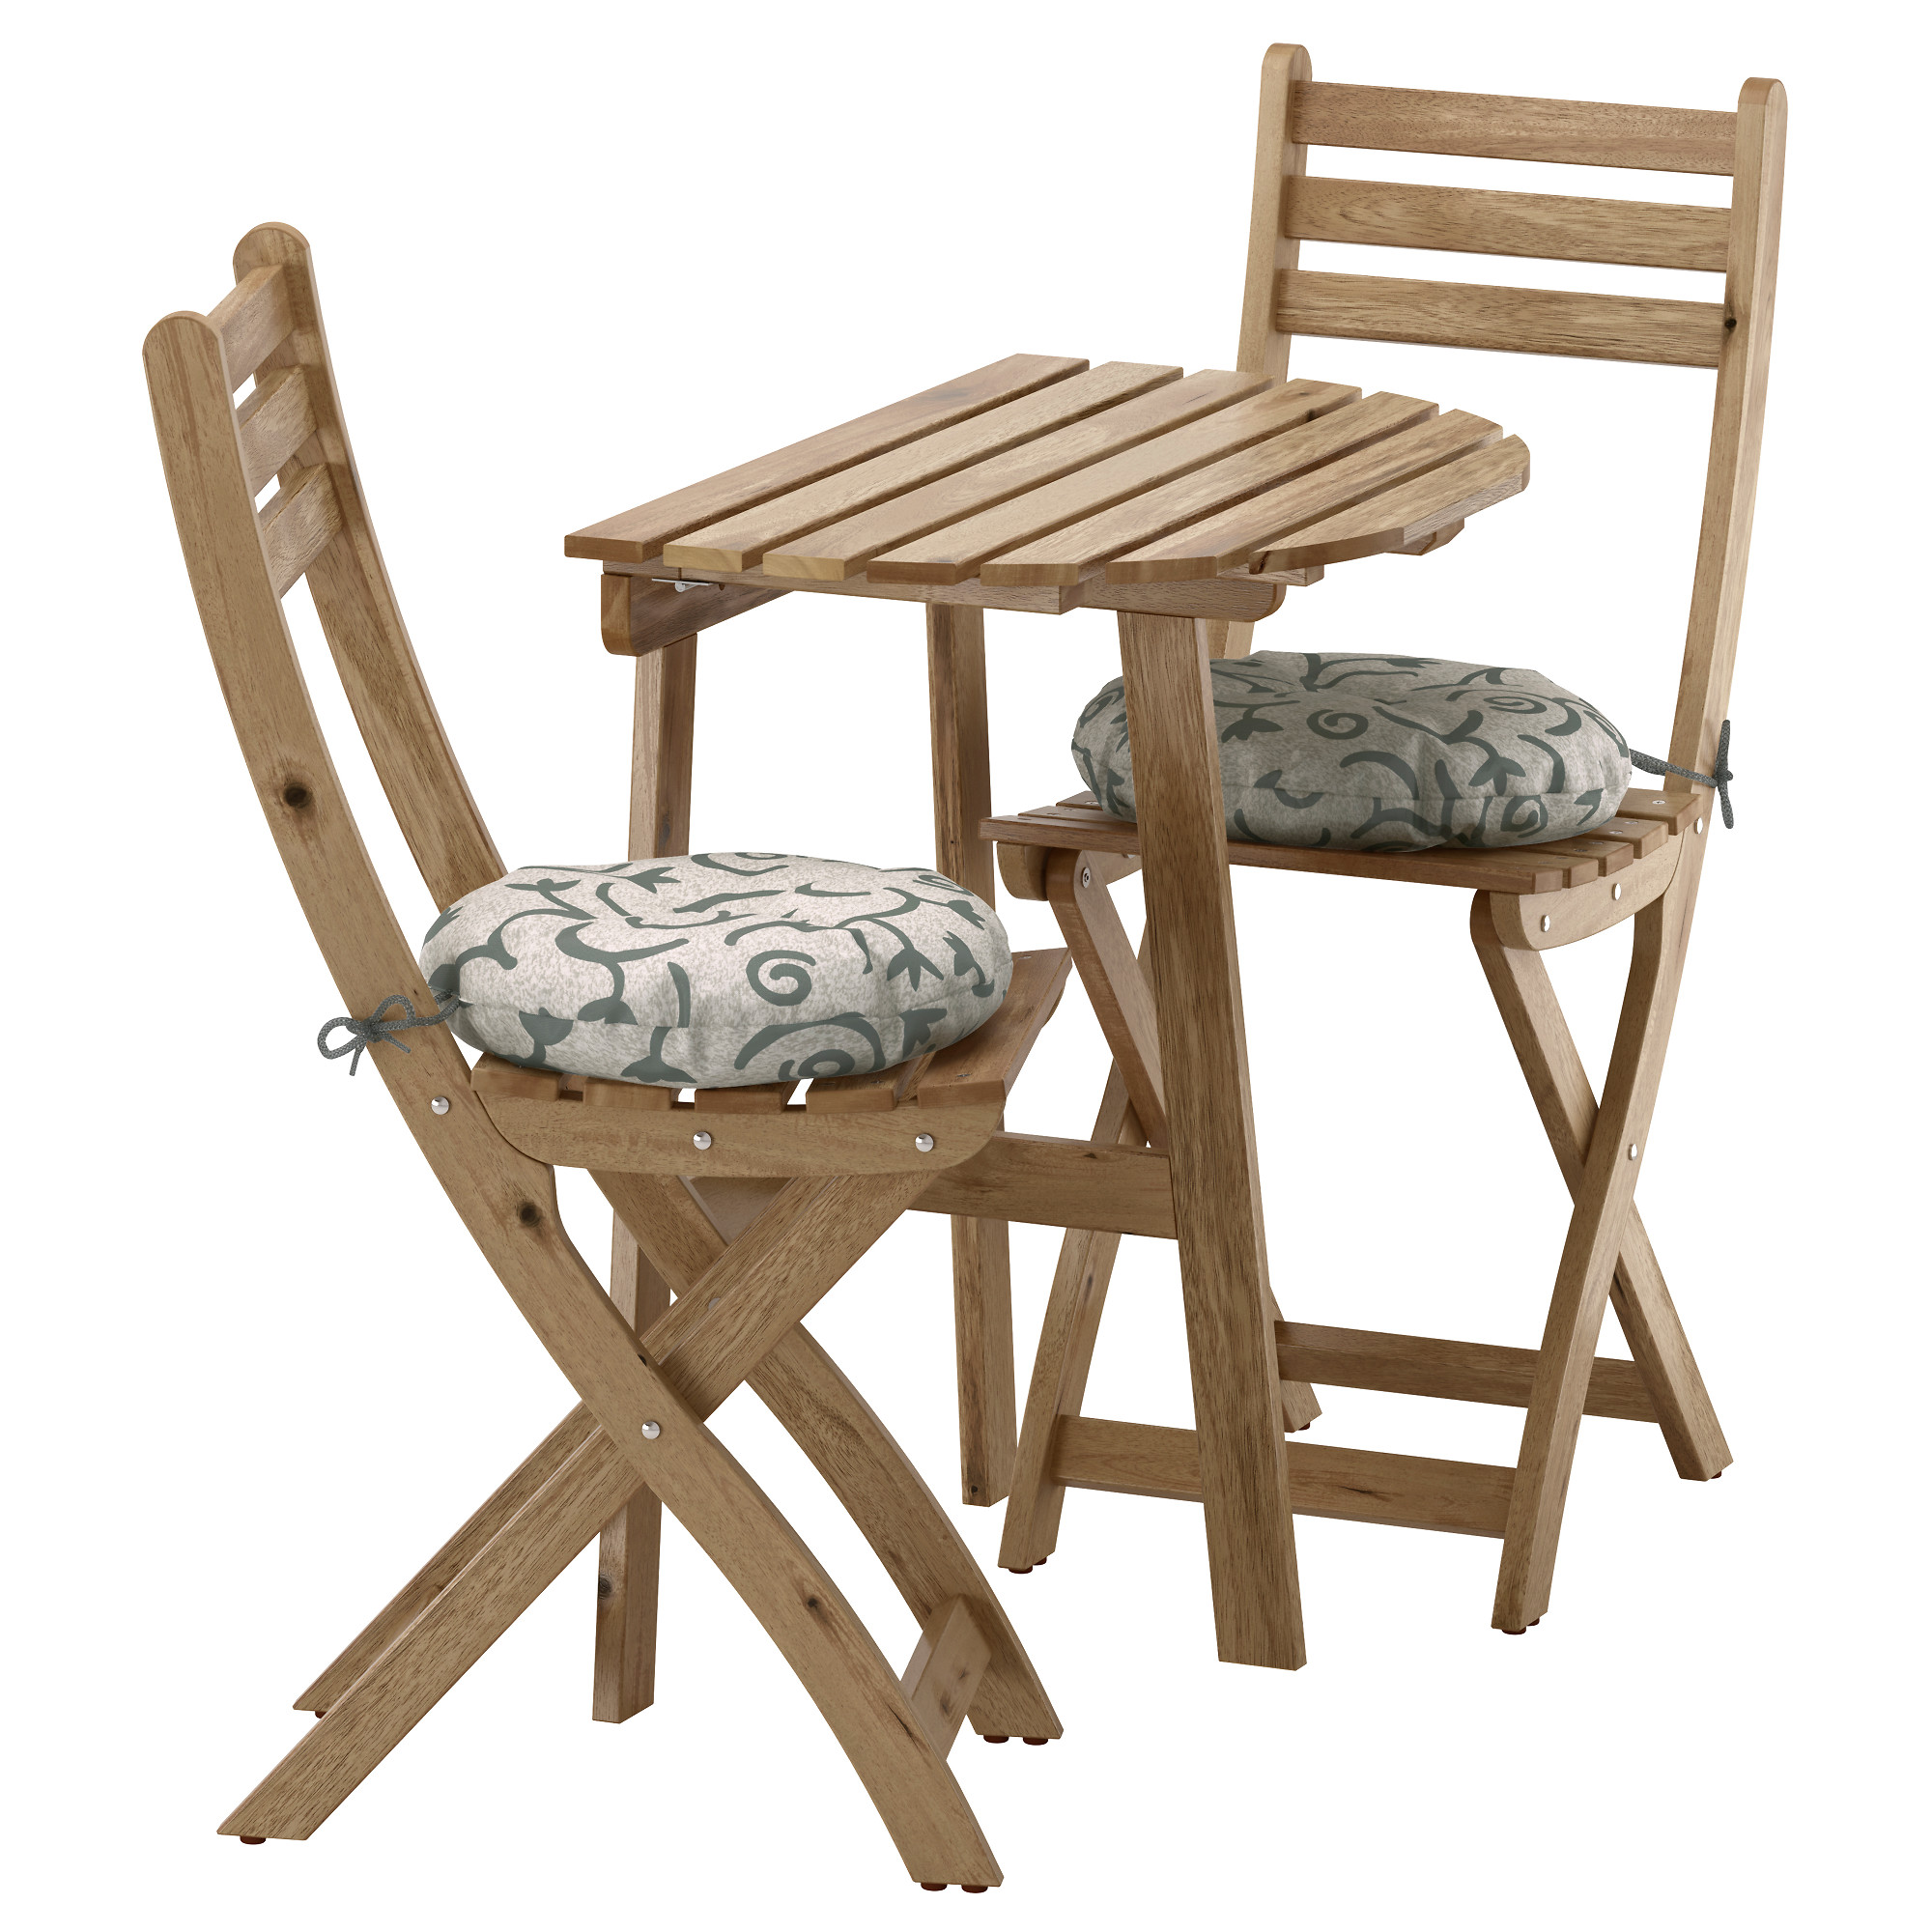 ASKHOLMEN Wall Table+2 Folding Chairs,outdoor, Gray/brown, Stegön Beige